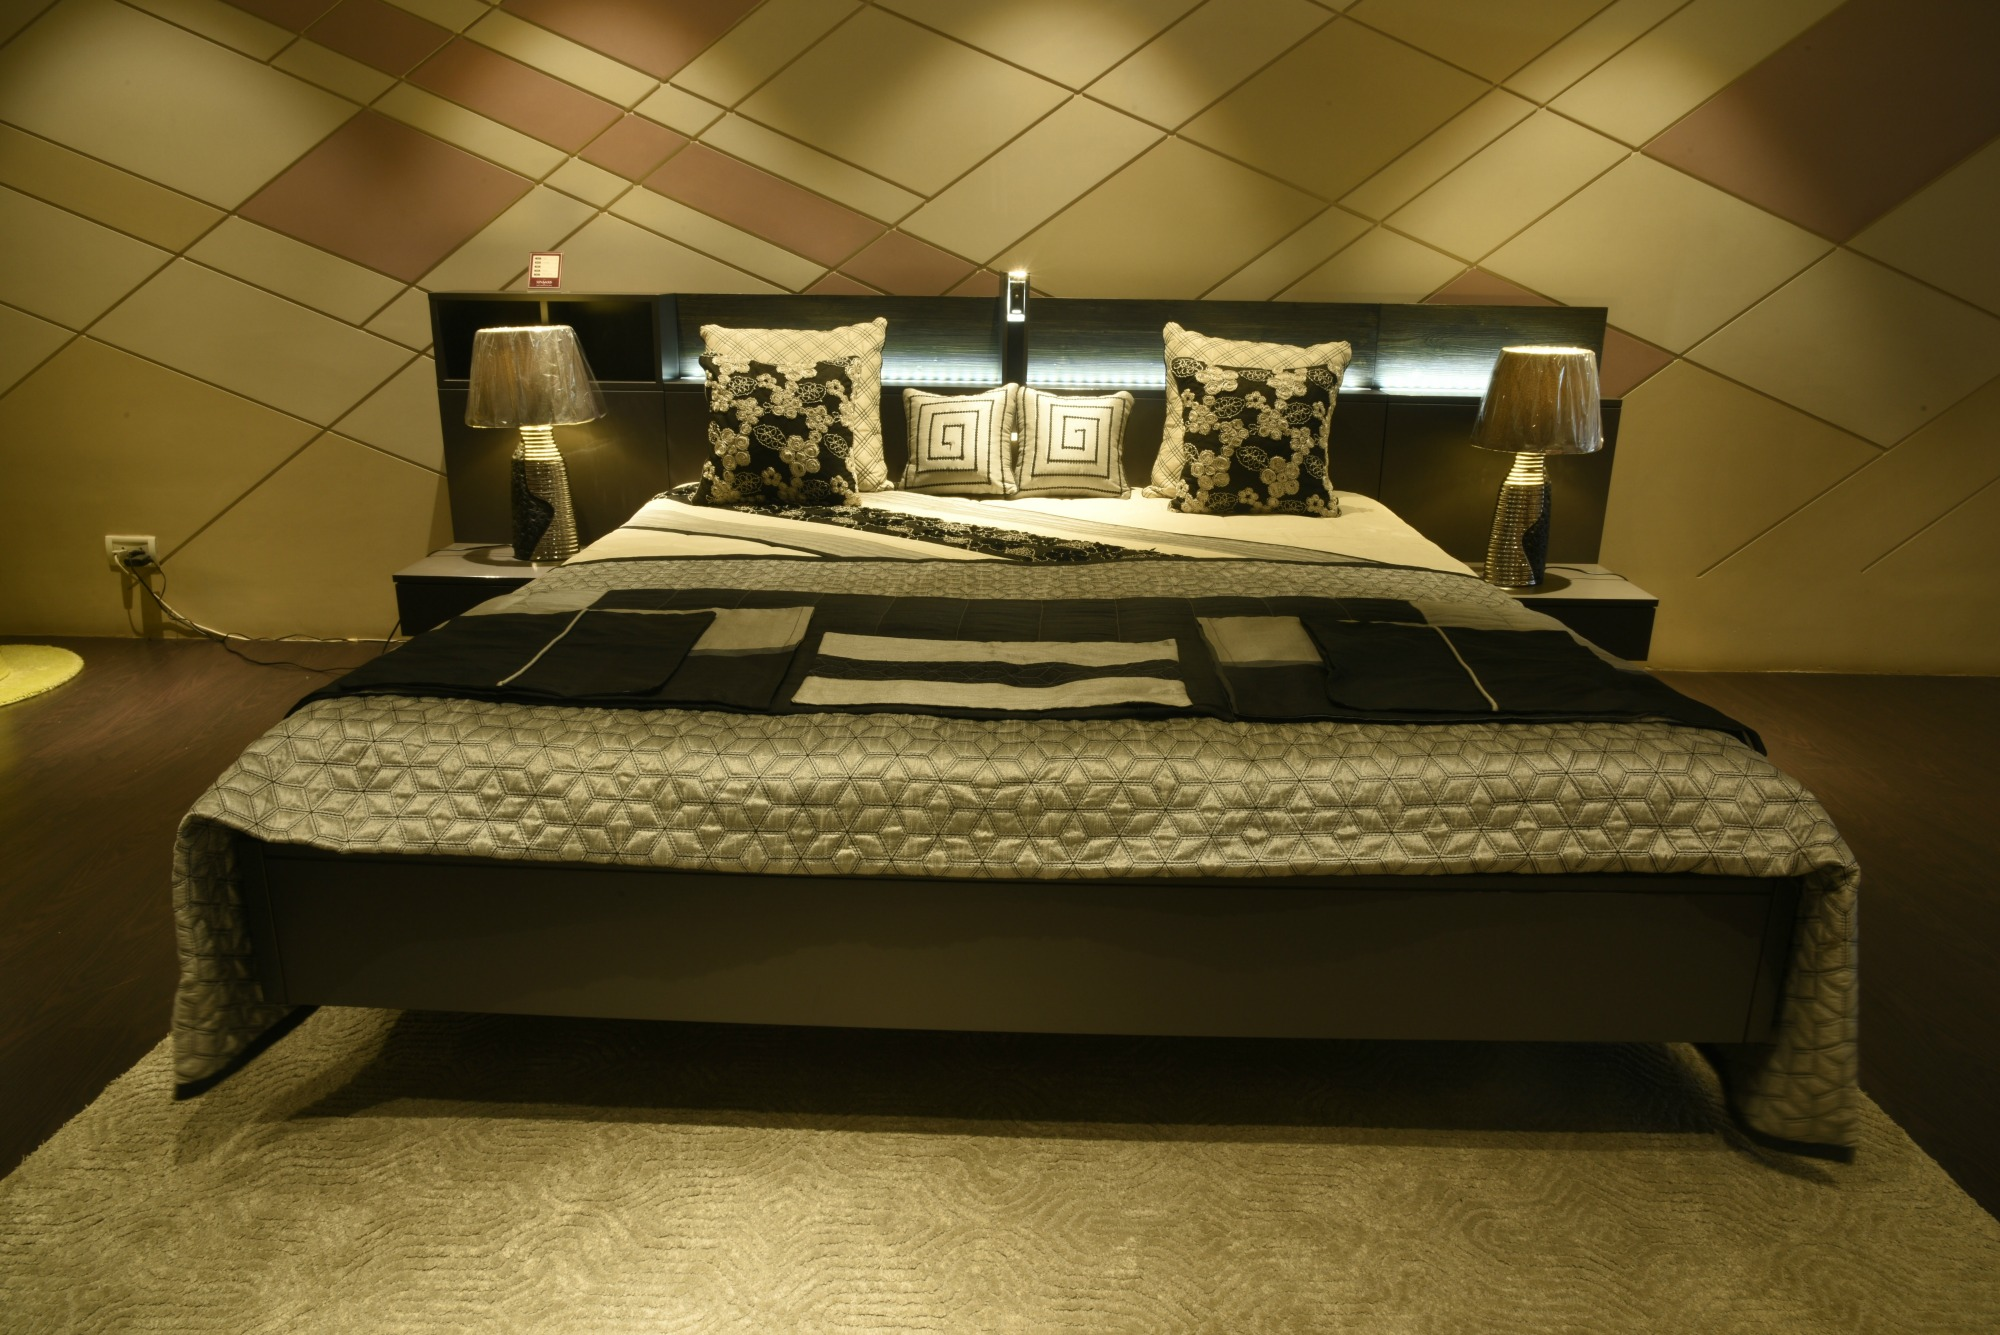 Best modern bedroom furniture showroom in kirti nagar delhi tus